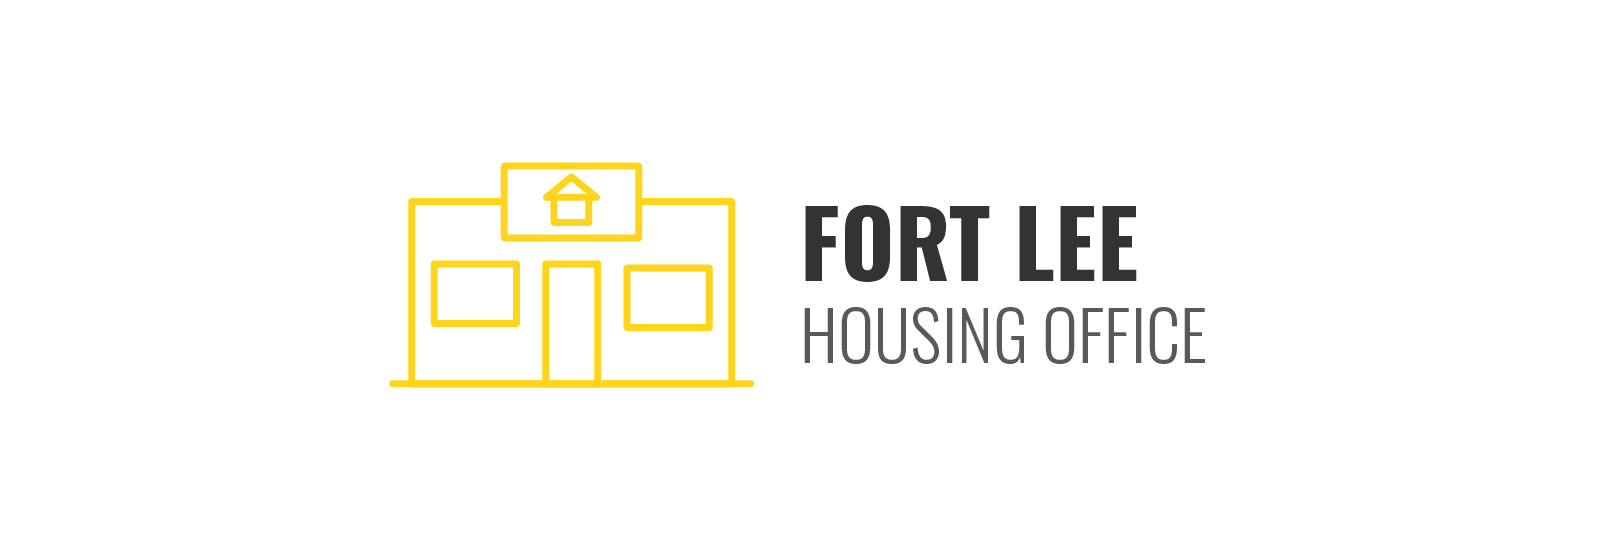 Fort Lee Housing Office